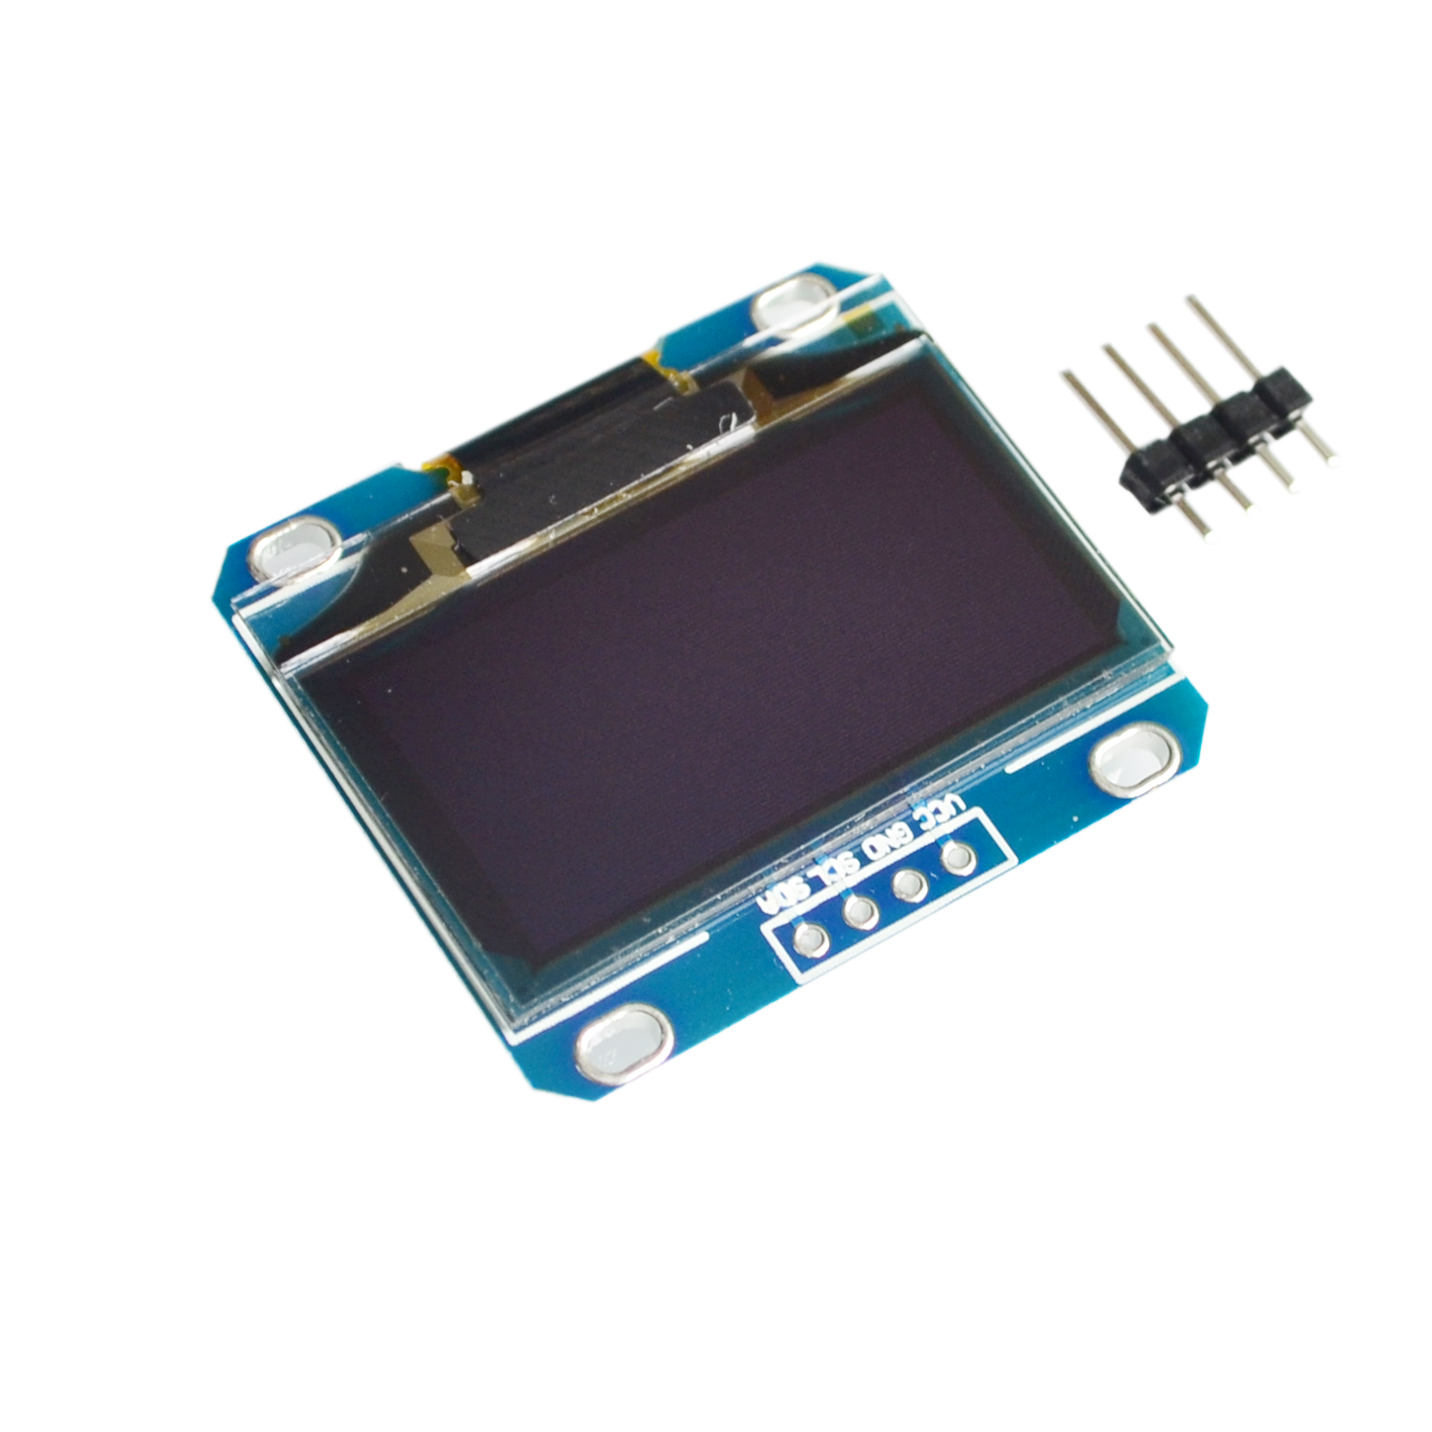 """10PCS/LOT 1.3"""" OLED module white or blue color 128X64 1.3 inch OLED LCD LED Display Module 1.3"""" IIC I2C Communicate-in LCD Modules from Electronic Components & Supplies    1"""